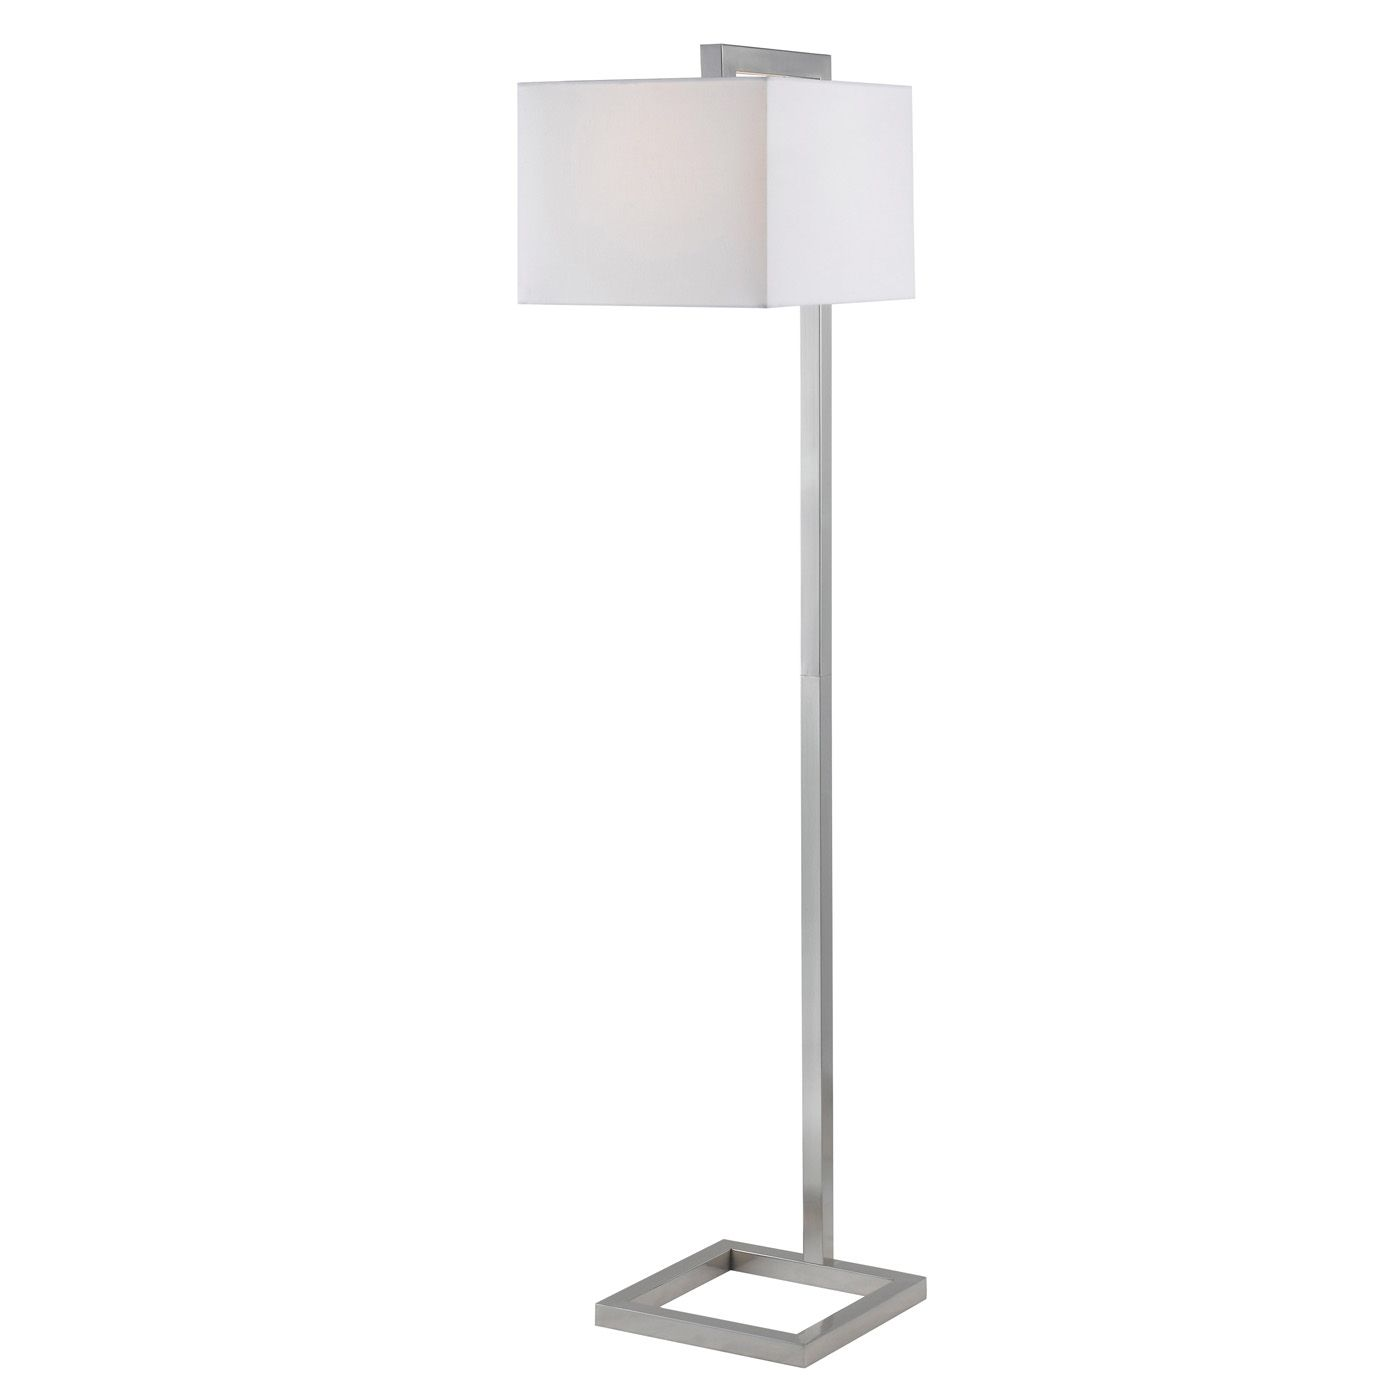 $153 Shop Kenroy Home 21080 4 Square Floor Lamp at ATG Stores ...